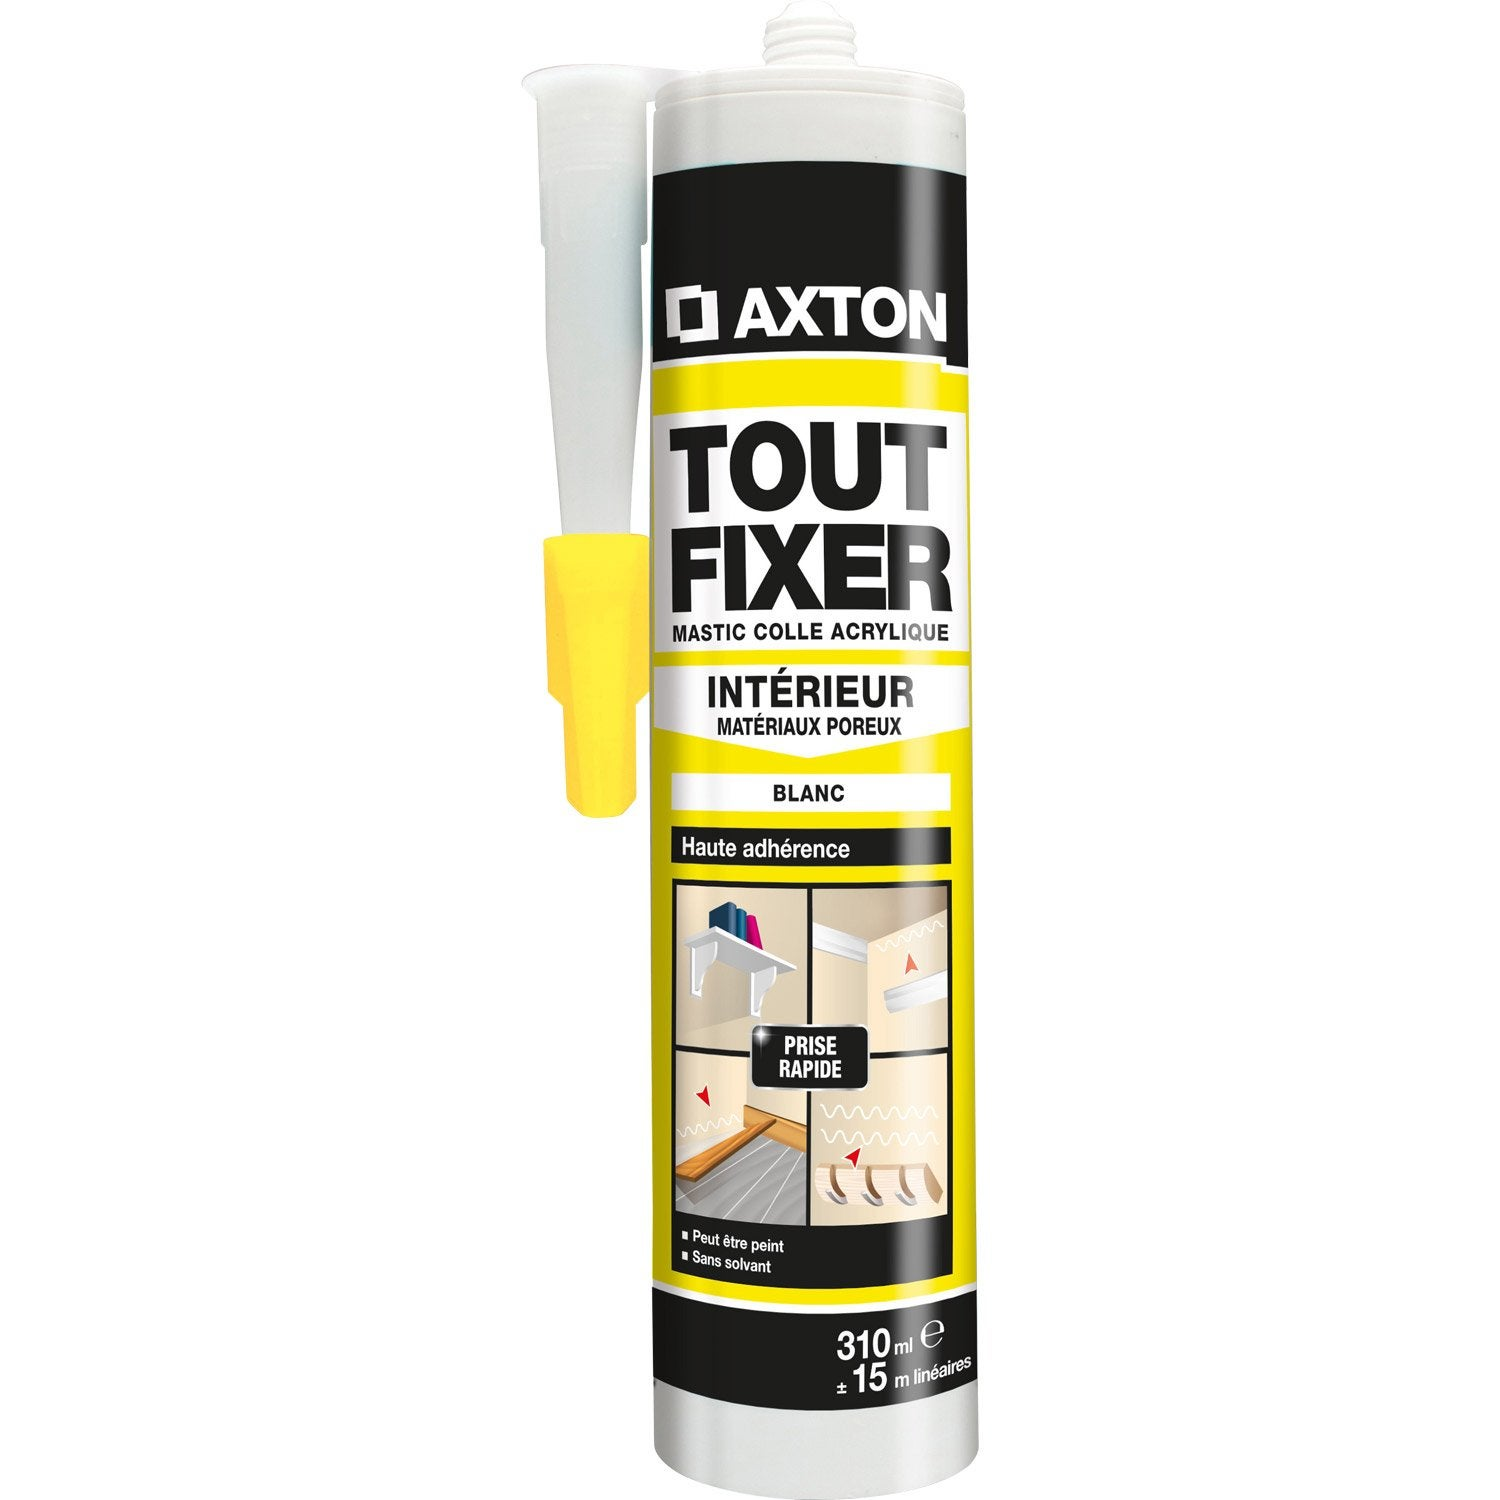 Colle mastic tout fixer axton 310 ml leroy merlin - Leroy merlin colle carrelage ...